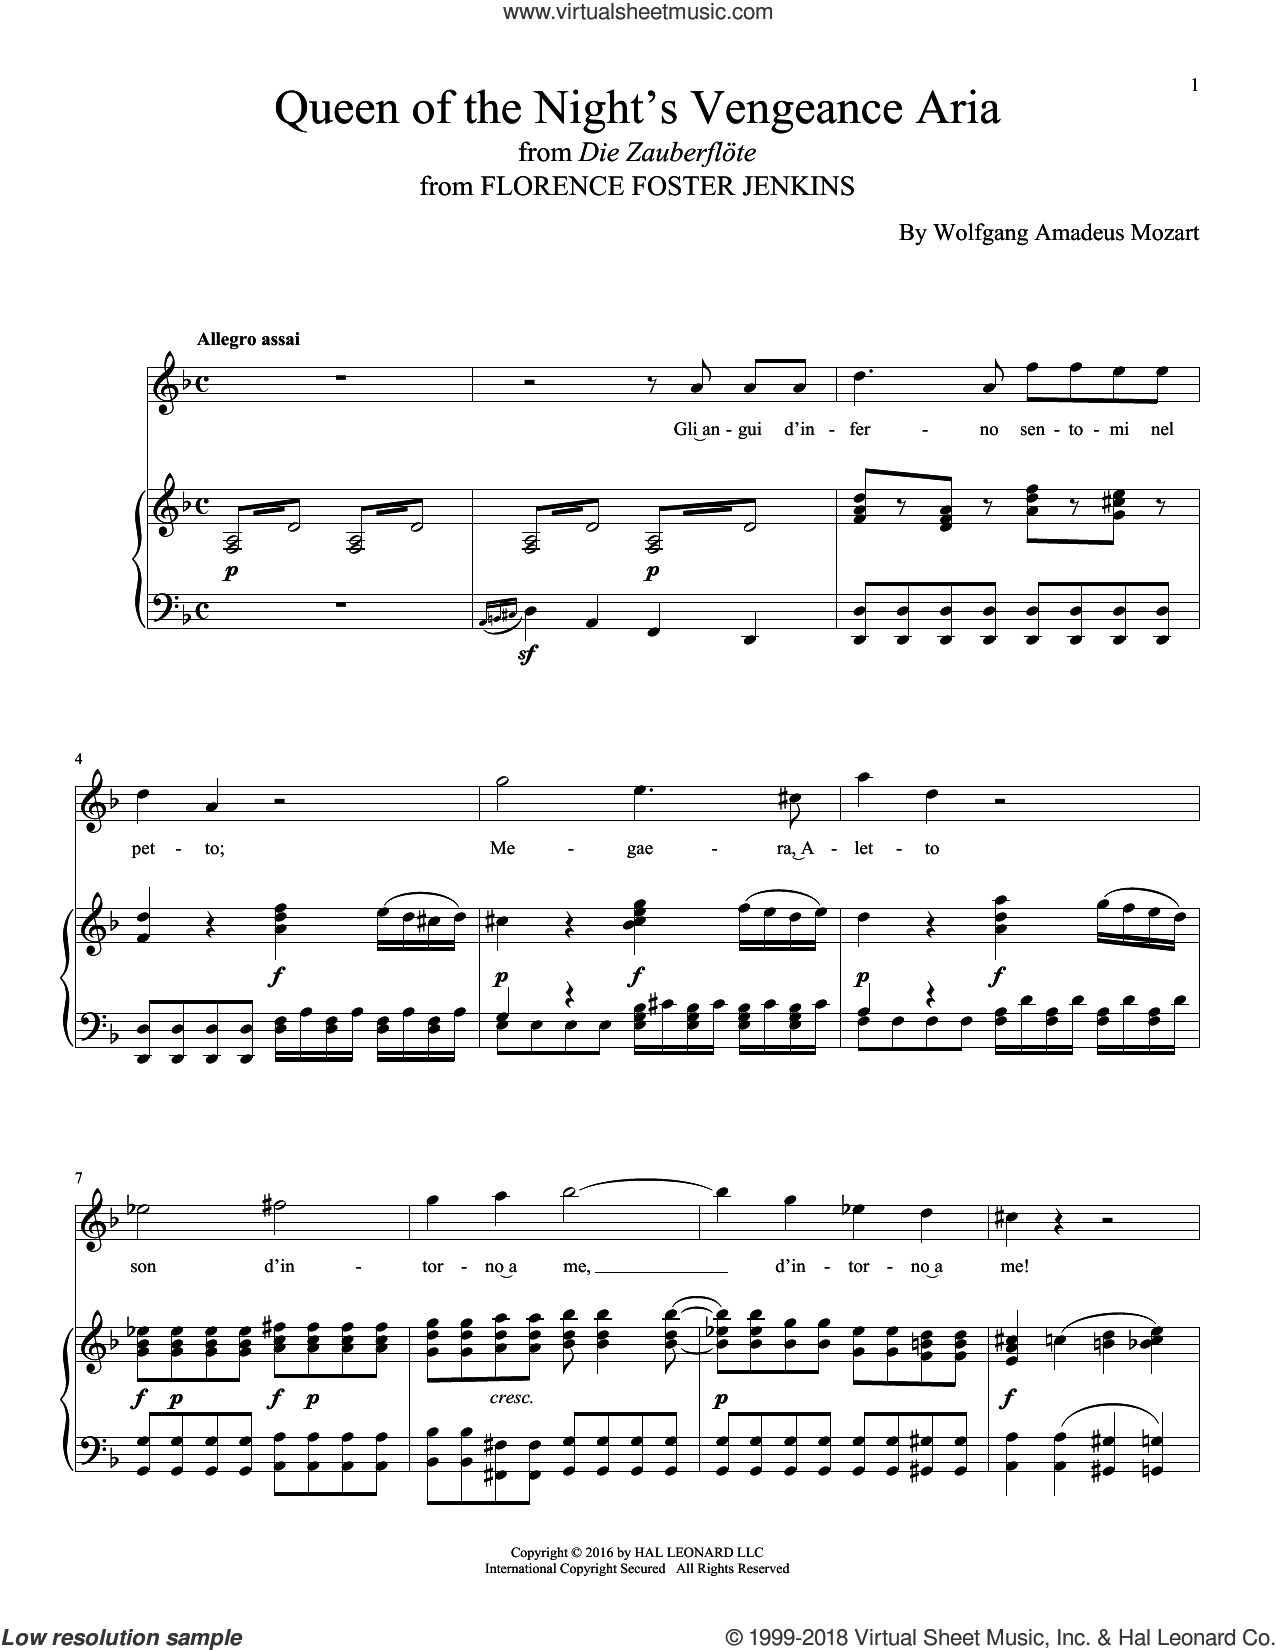 Queen Of The Night's Vengeance Aria sheet music for voice and piano by Wolfgang Amadeus Mozart and Alexandre Desplat, classical score, intermediate skill level